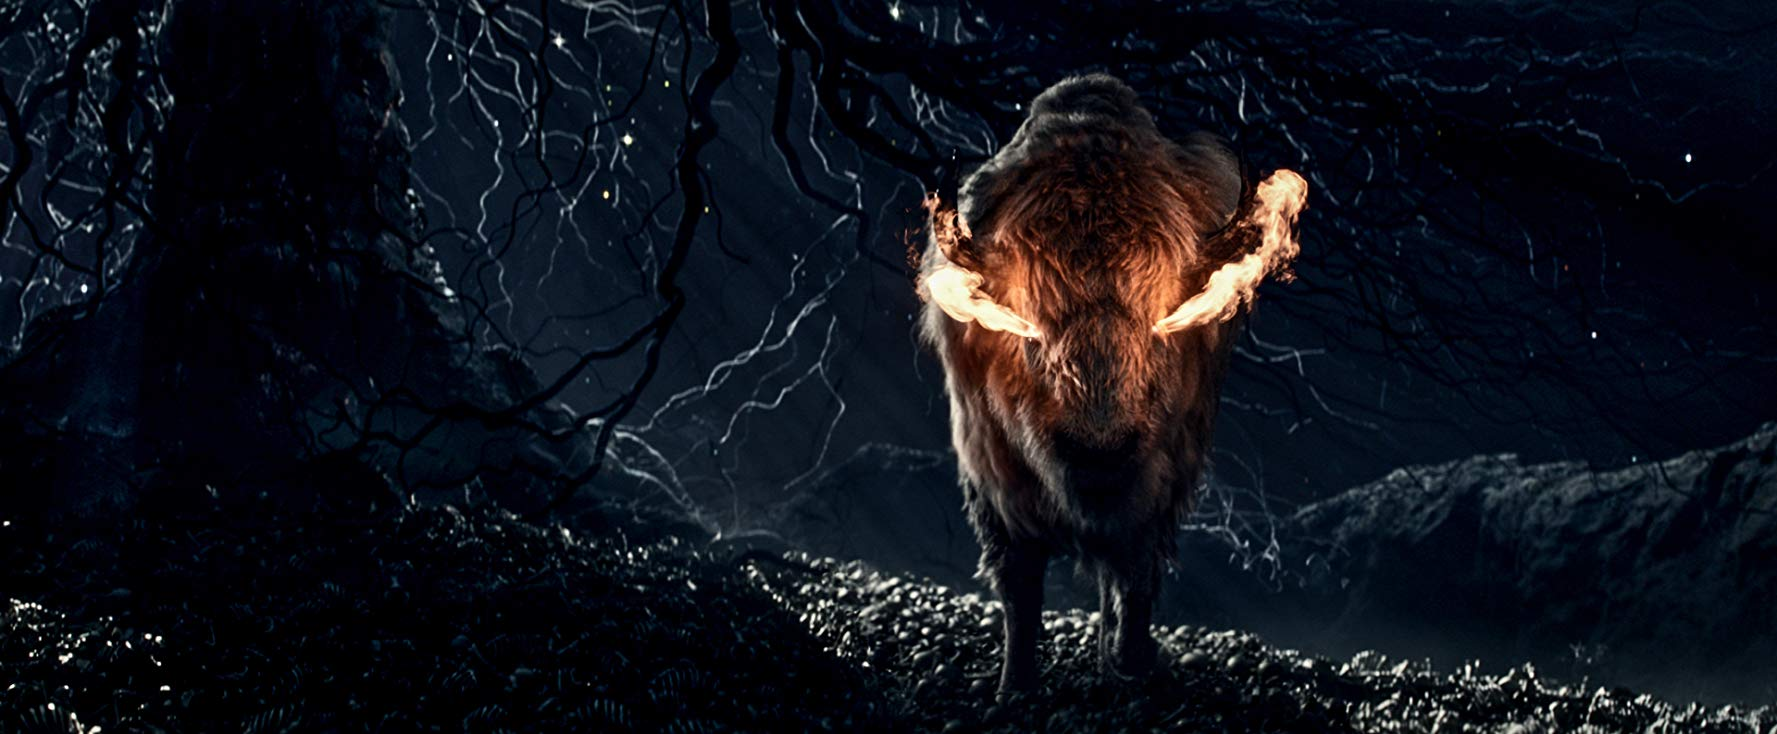 The White Buffalo in 'American Gods' (Source: IMDB)